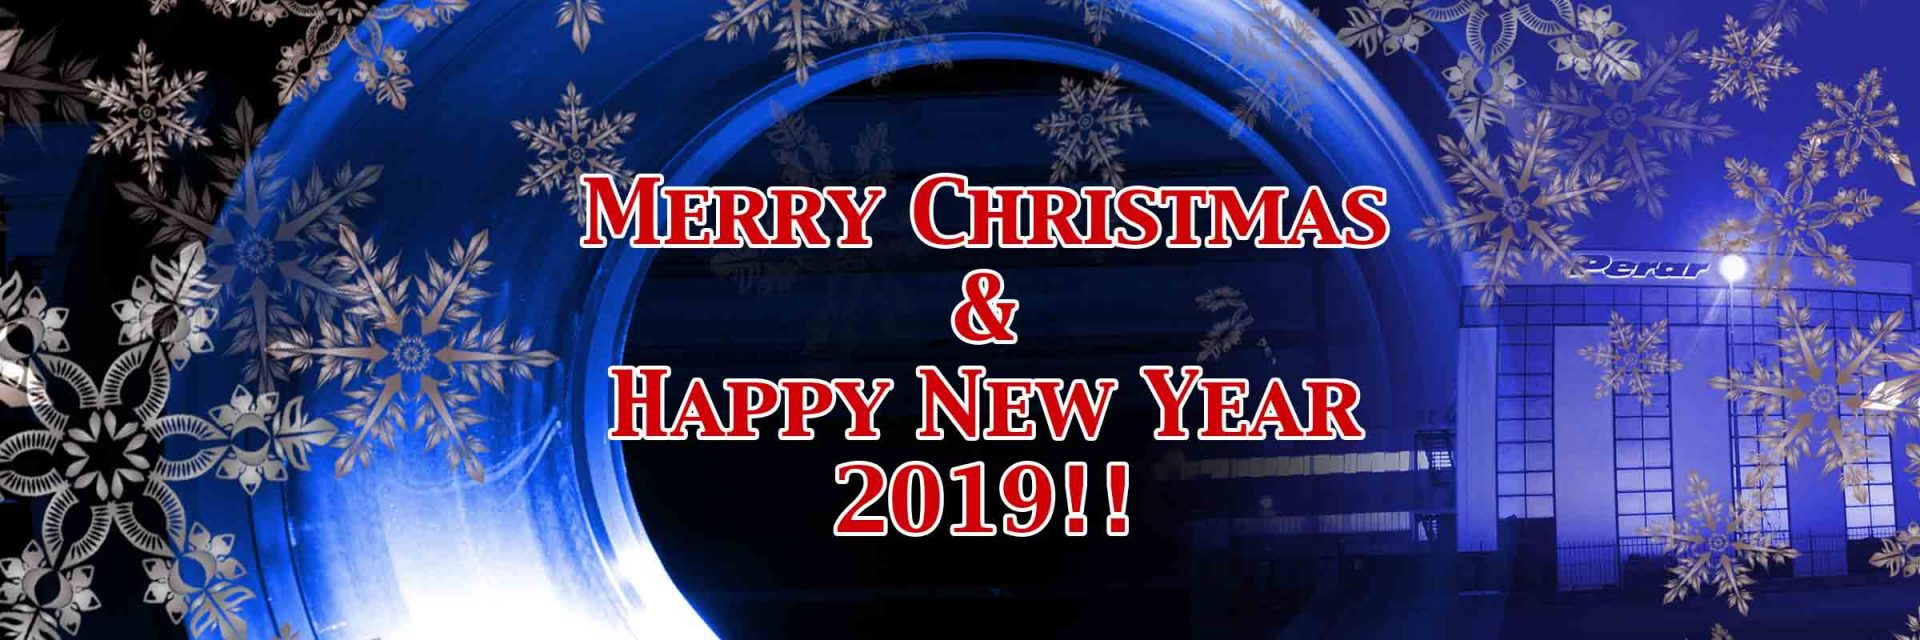 Merry Christmas and Happy New 2019